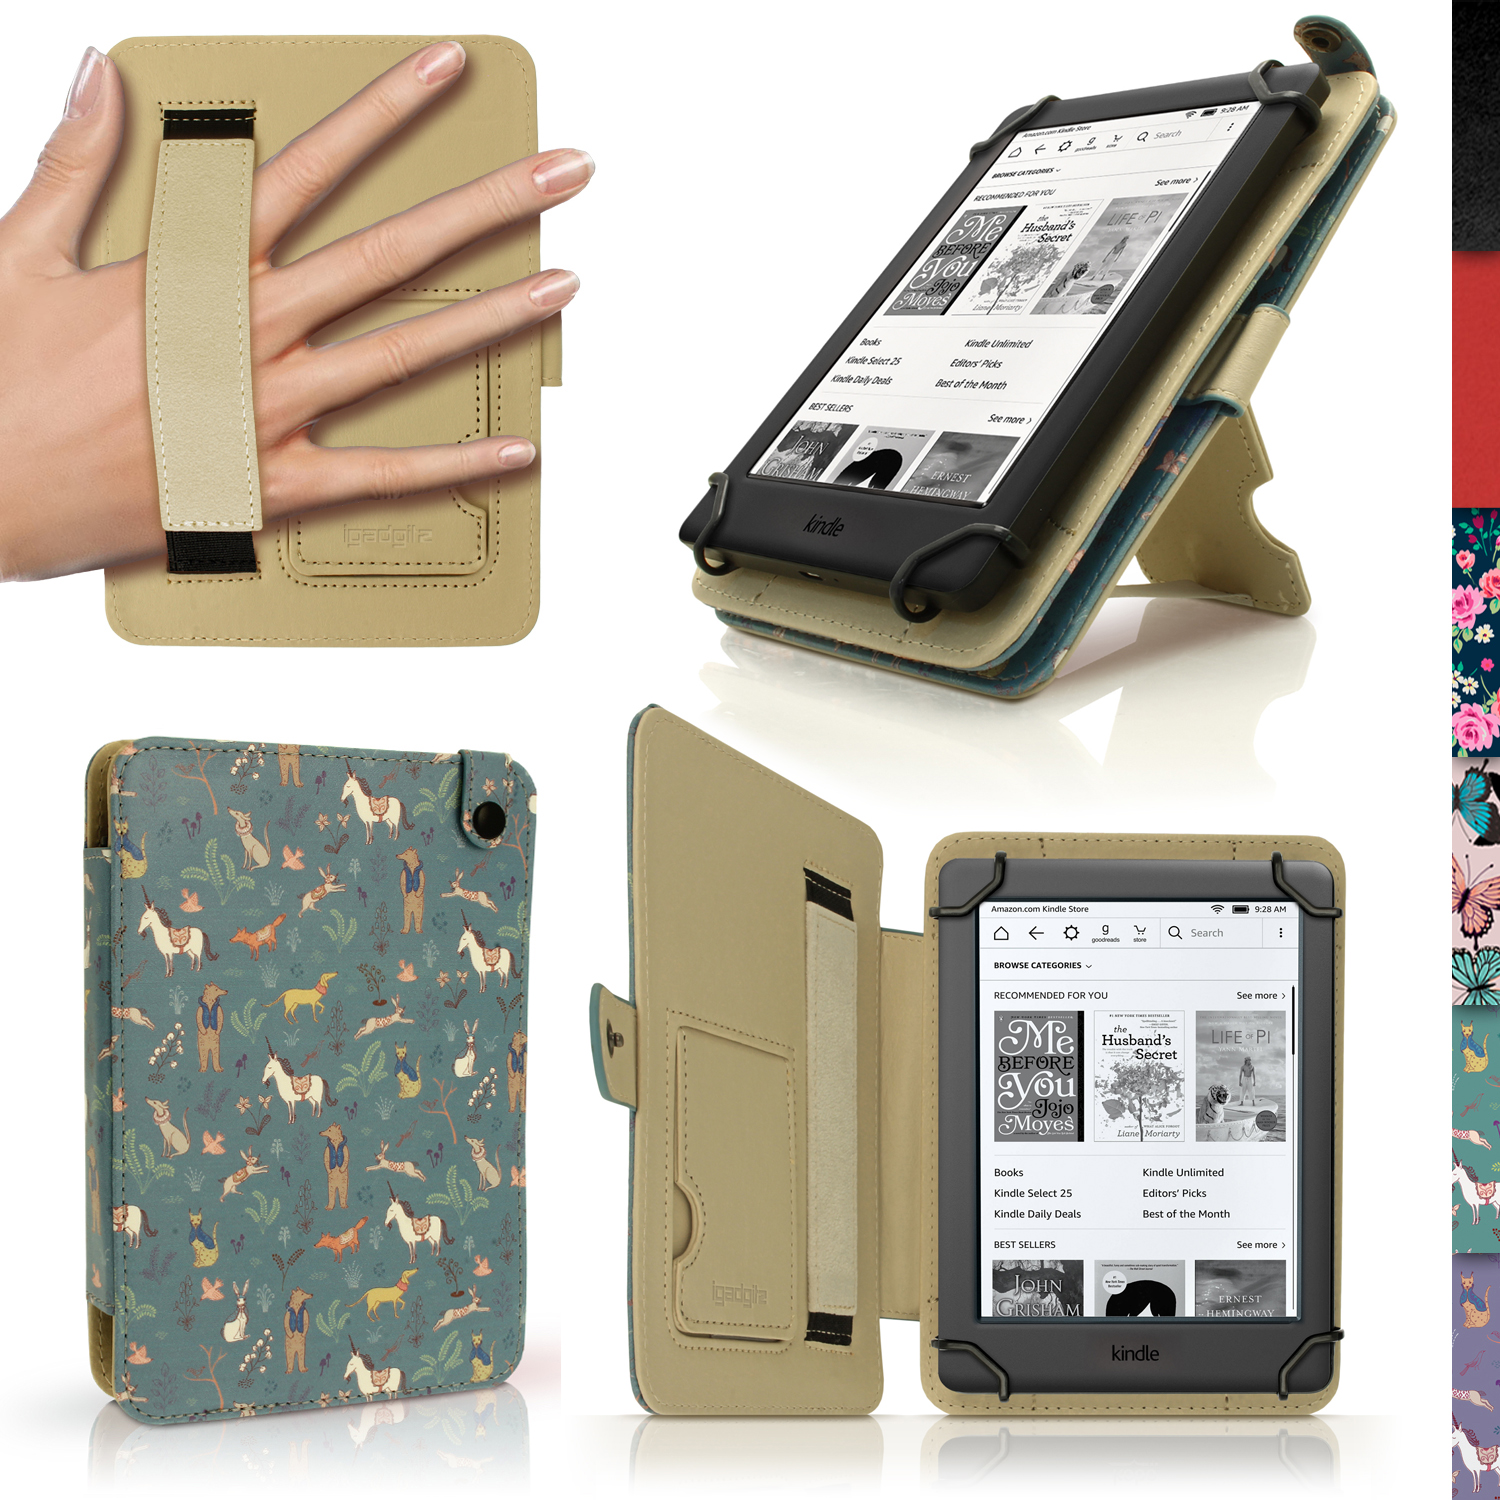 Igadgitz Blue Mystery Forest Pu Leather Case Cover For Amazon Kindle E Reader 6